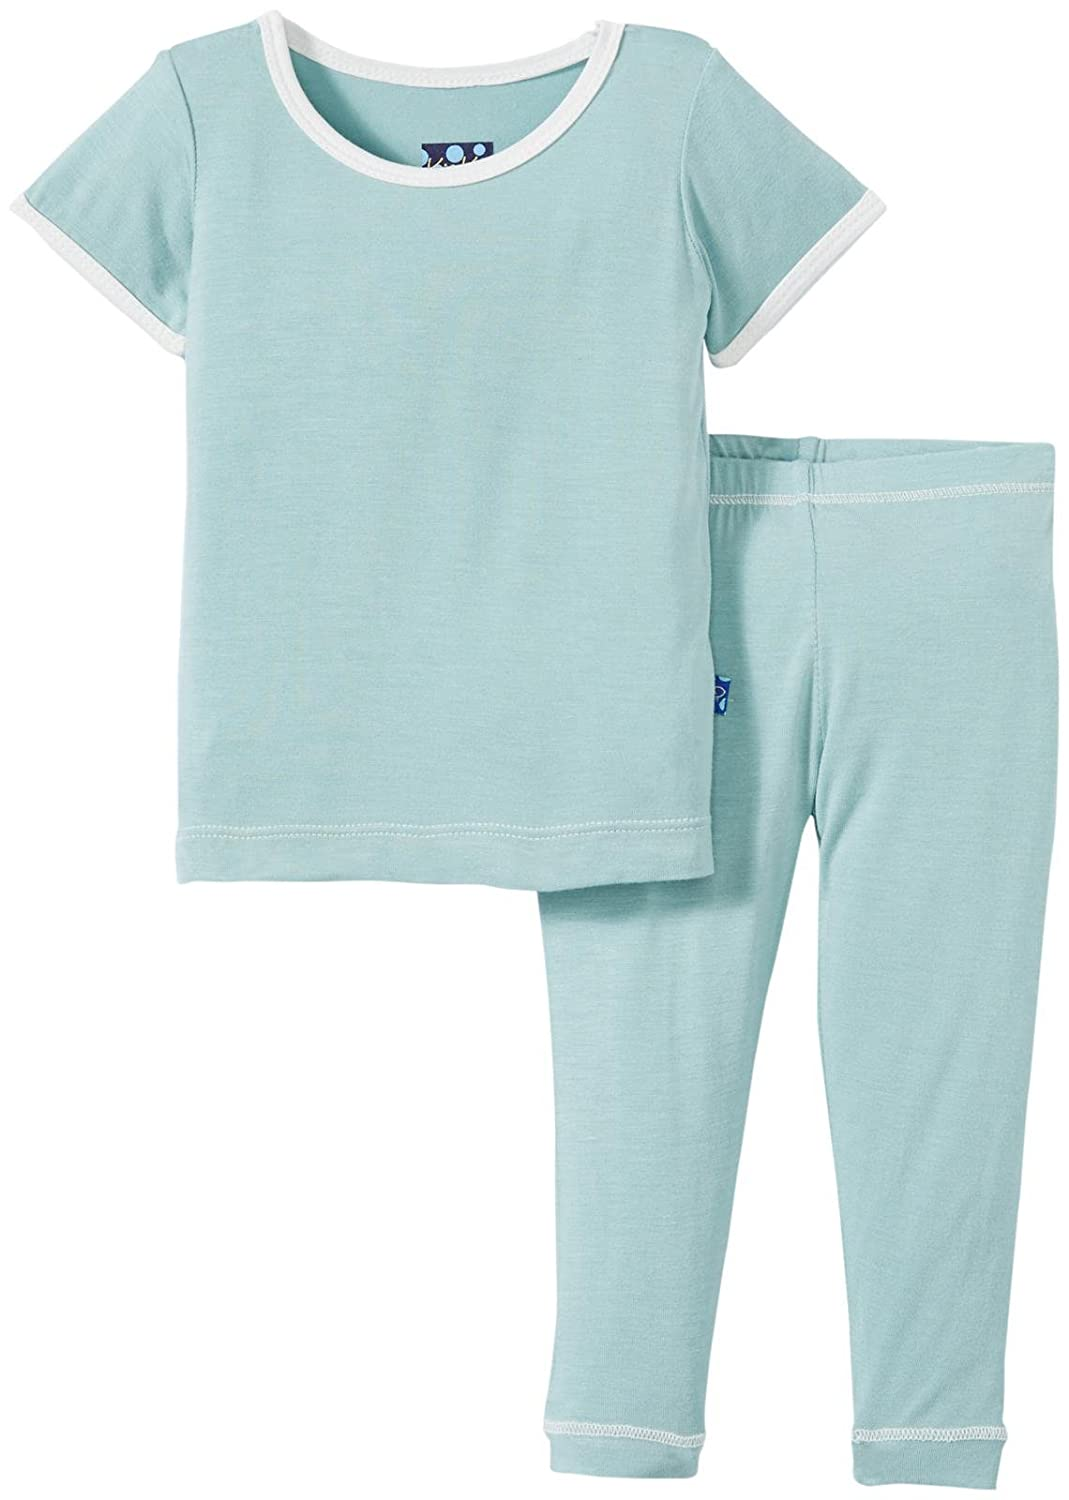 大特価 KicKee 6 Pants SLEEPWEAR Jade/Natural ベビーガールズ 3 - 6 Months Jade SLEEPWEAR/Natural B01AXUBQB8, 『4年保証』:46af17f6 --- a0267596.xsph.ru